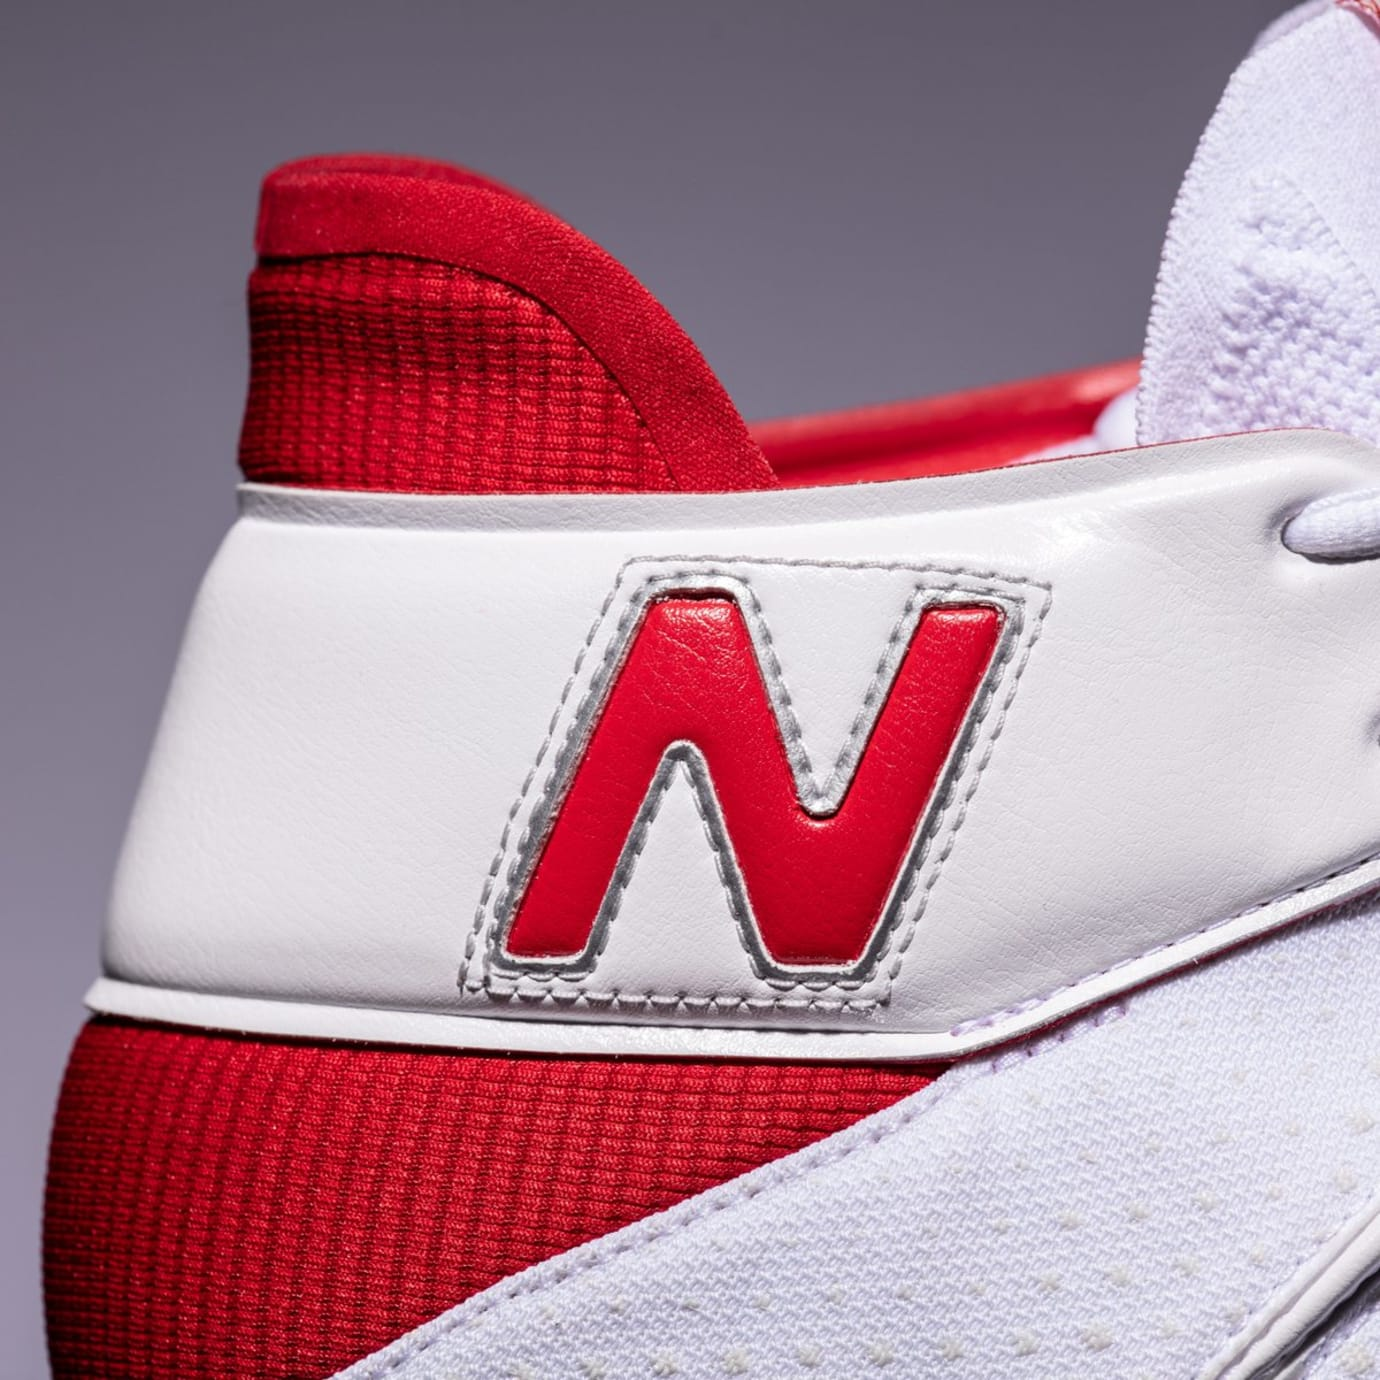 New Balance OMN1S Kawhi Leonard All-Star Game PE 'White/Red' 4